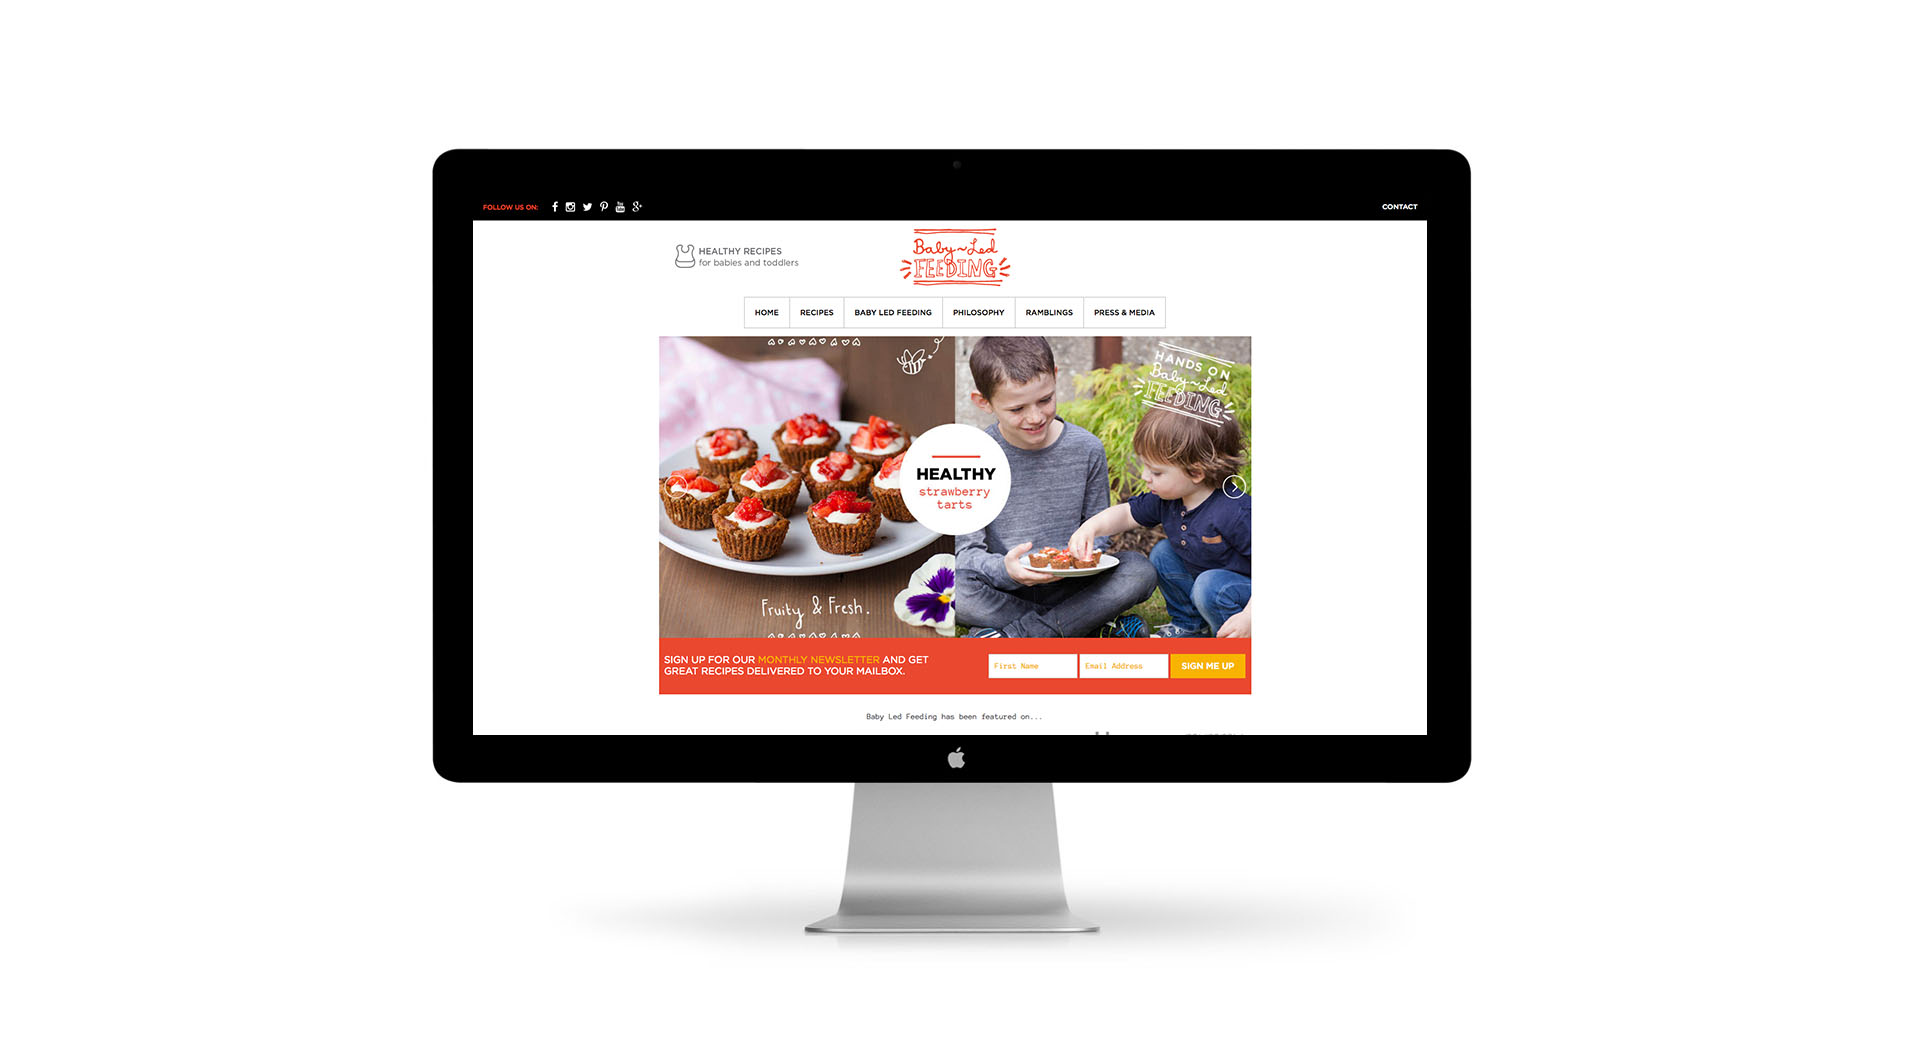 Baby Led Feeding Branding and website for new food startup Irish company Website Homepage.